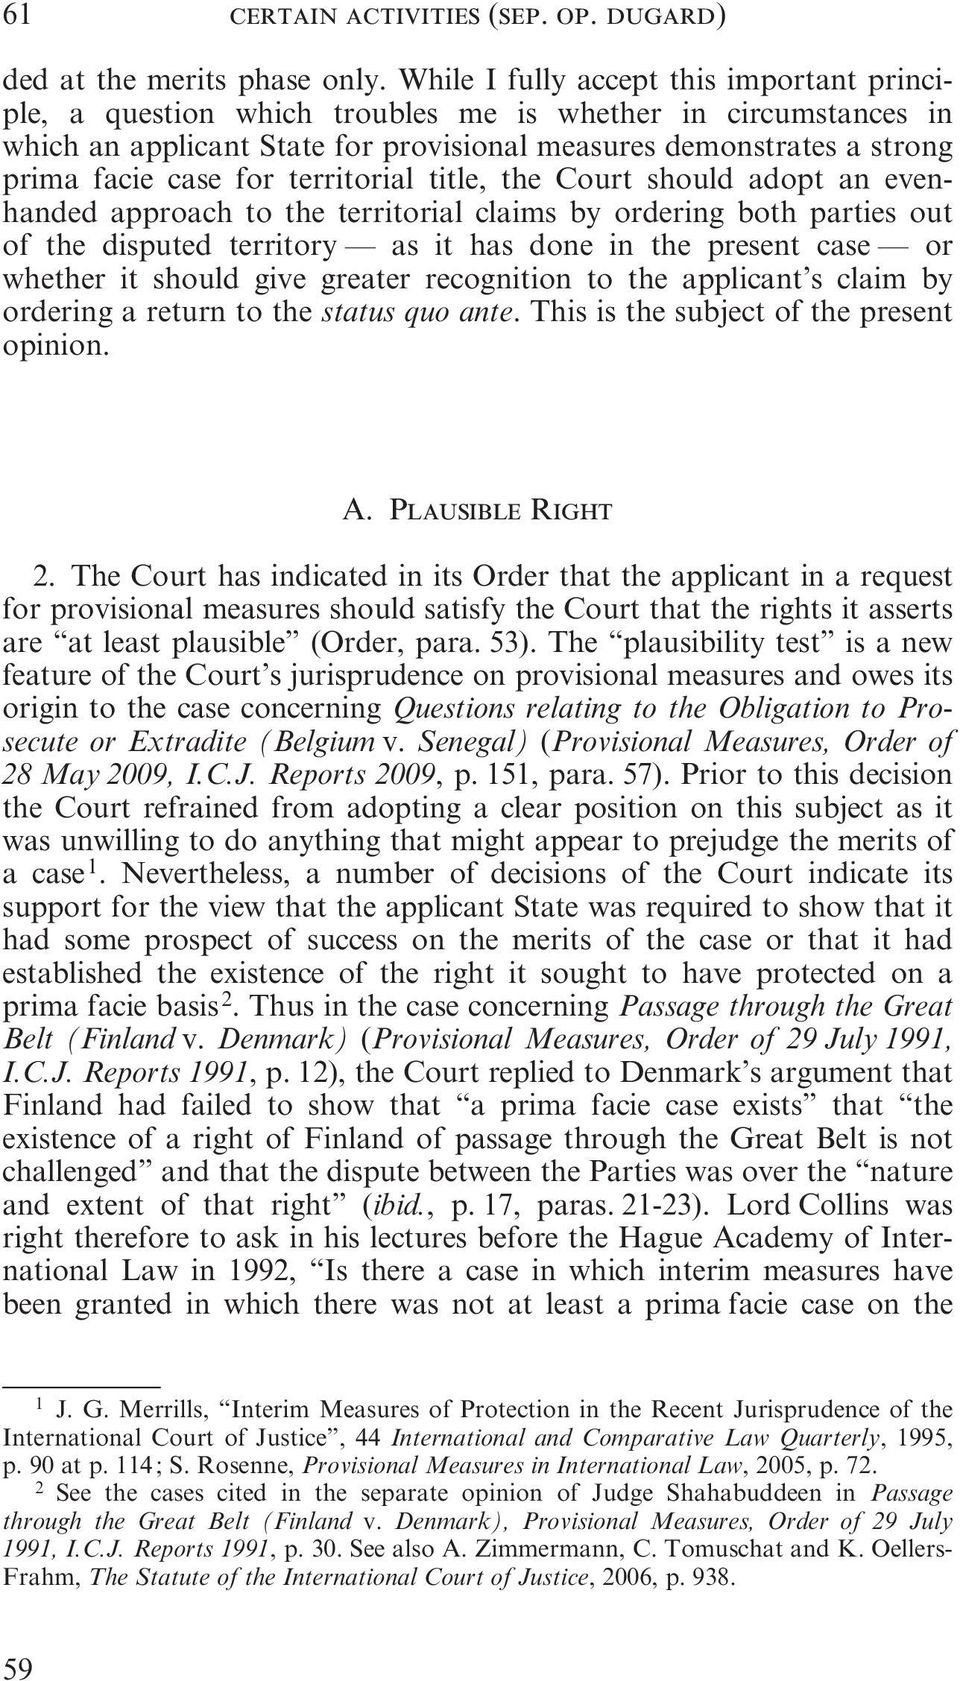 territorial title, the Court should adopt an evenhanded approach to the territorial claims by ordering both parties out of the disputed territory as it has done in the present case or whether it